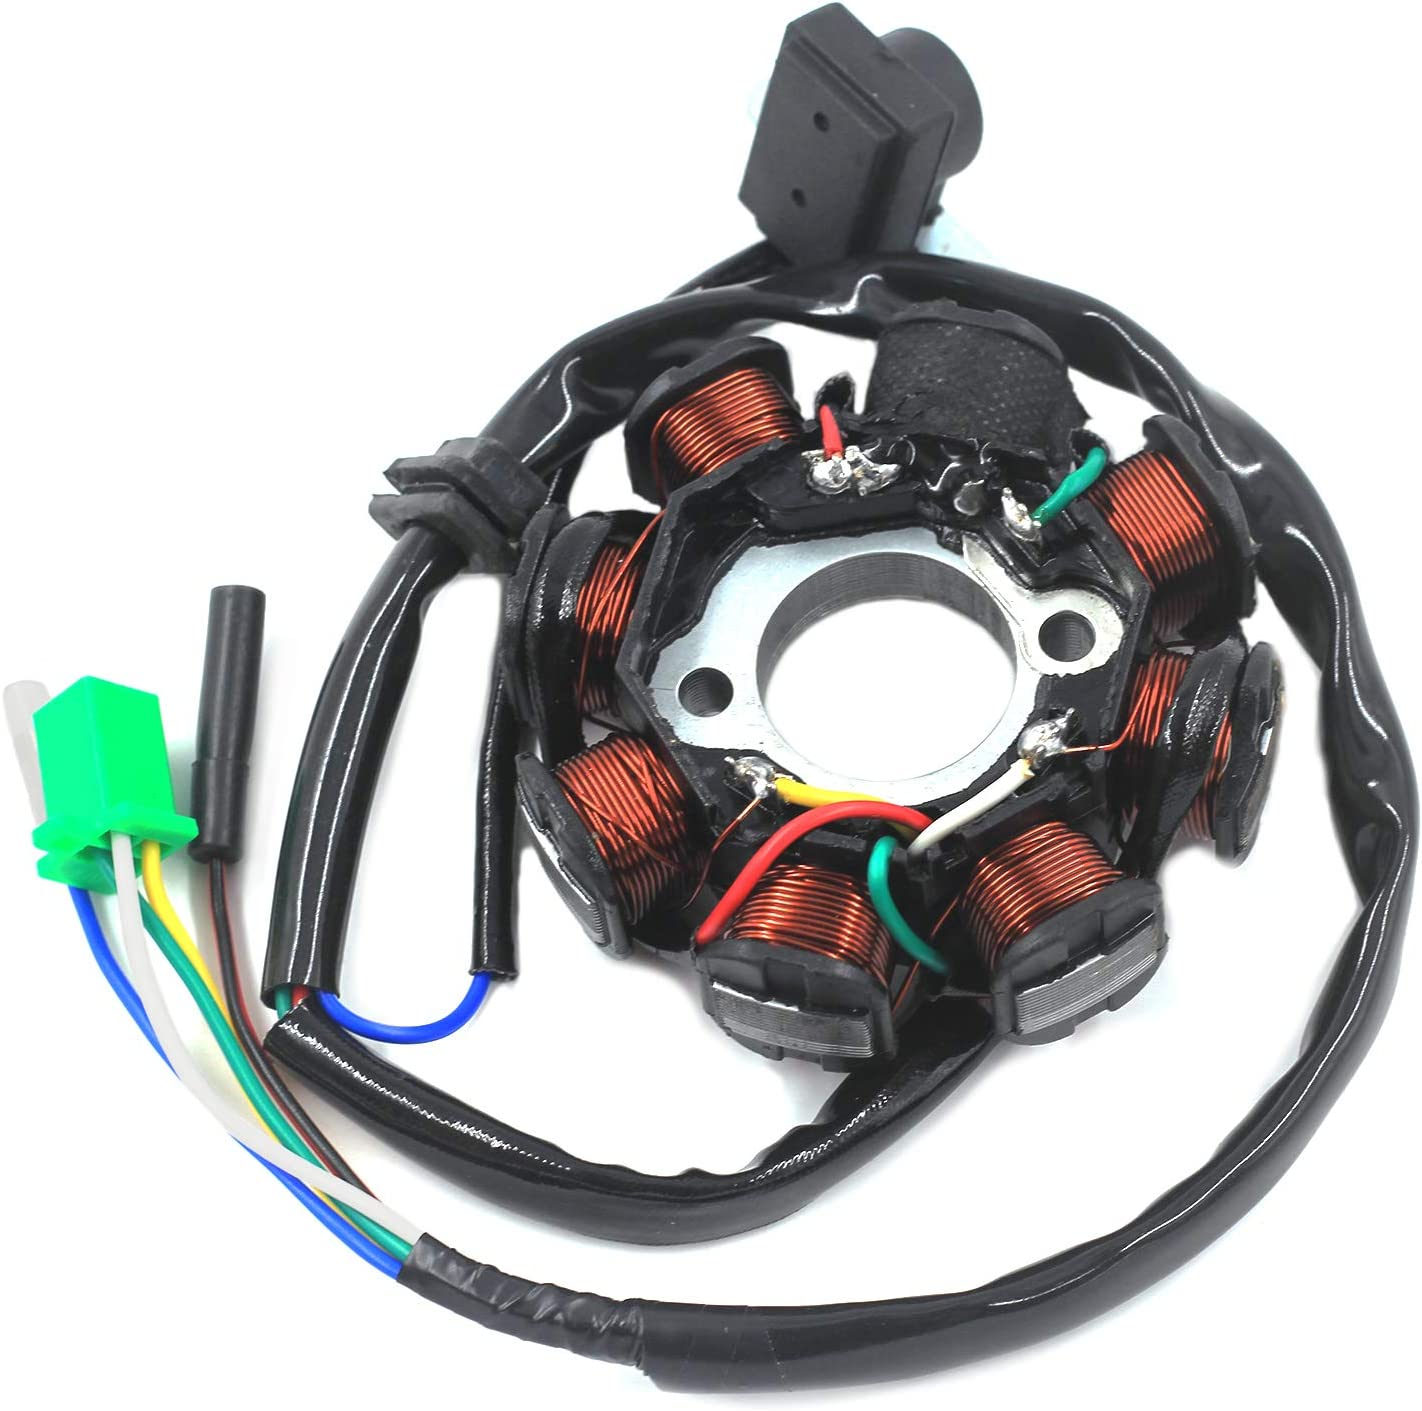 Trkimal Ignition Stator Magneto 5 wire DC 8 Pole Coil for GY6 49cc - 180cc engine, Scooter Moped ATV Dune Buggy Go Kart